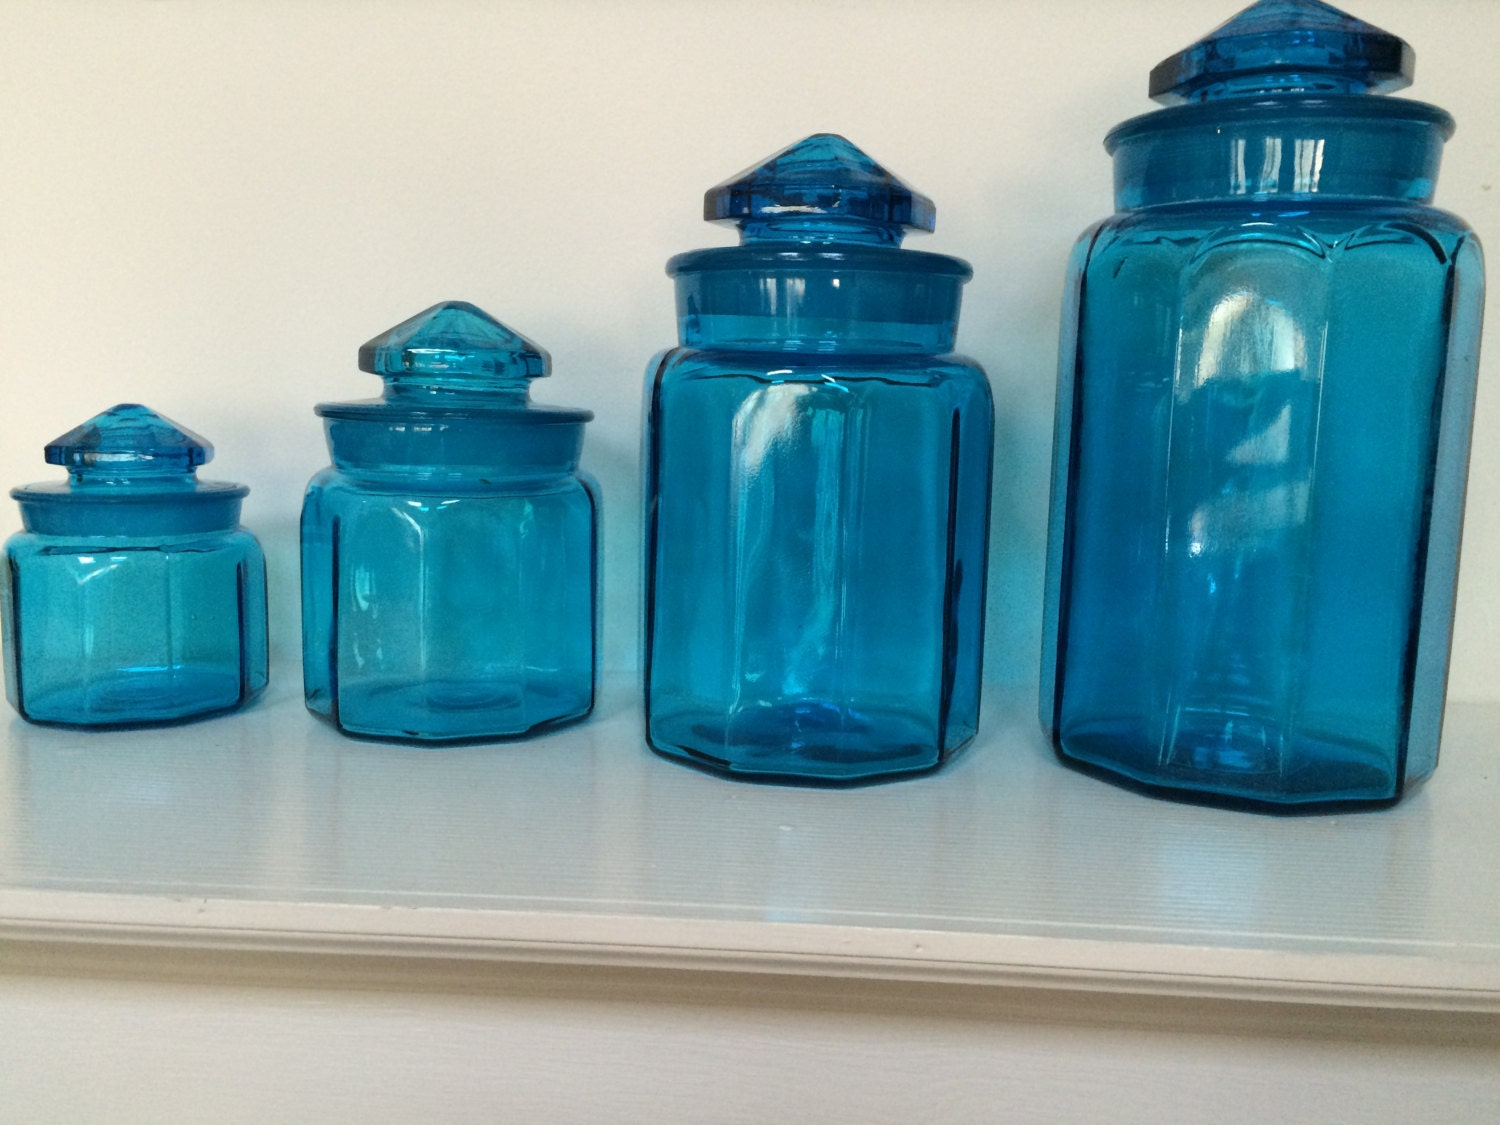 Turquoise blue glass kitchen canisters apothecary jars 10 - Blue glass kitchen canisters ...